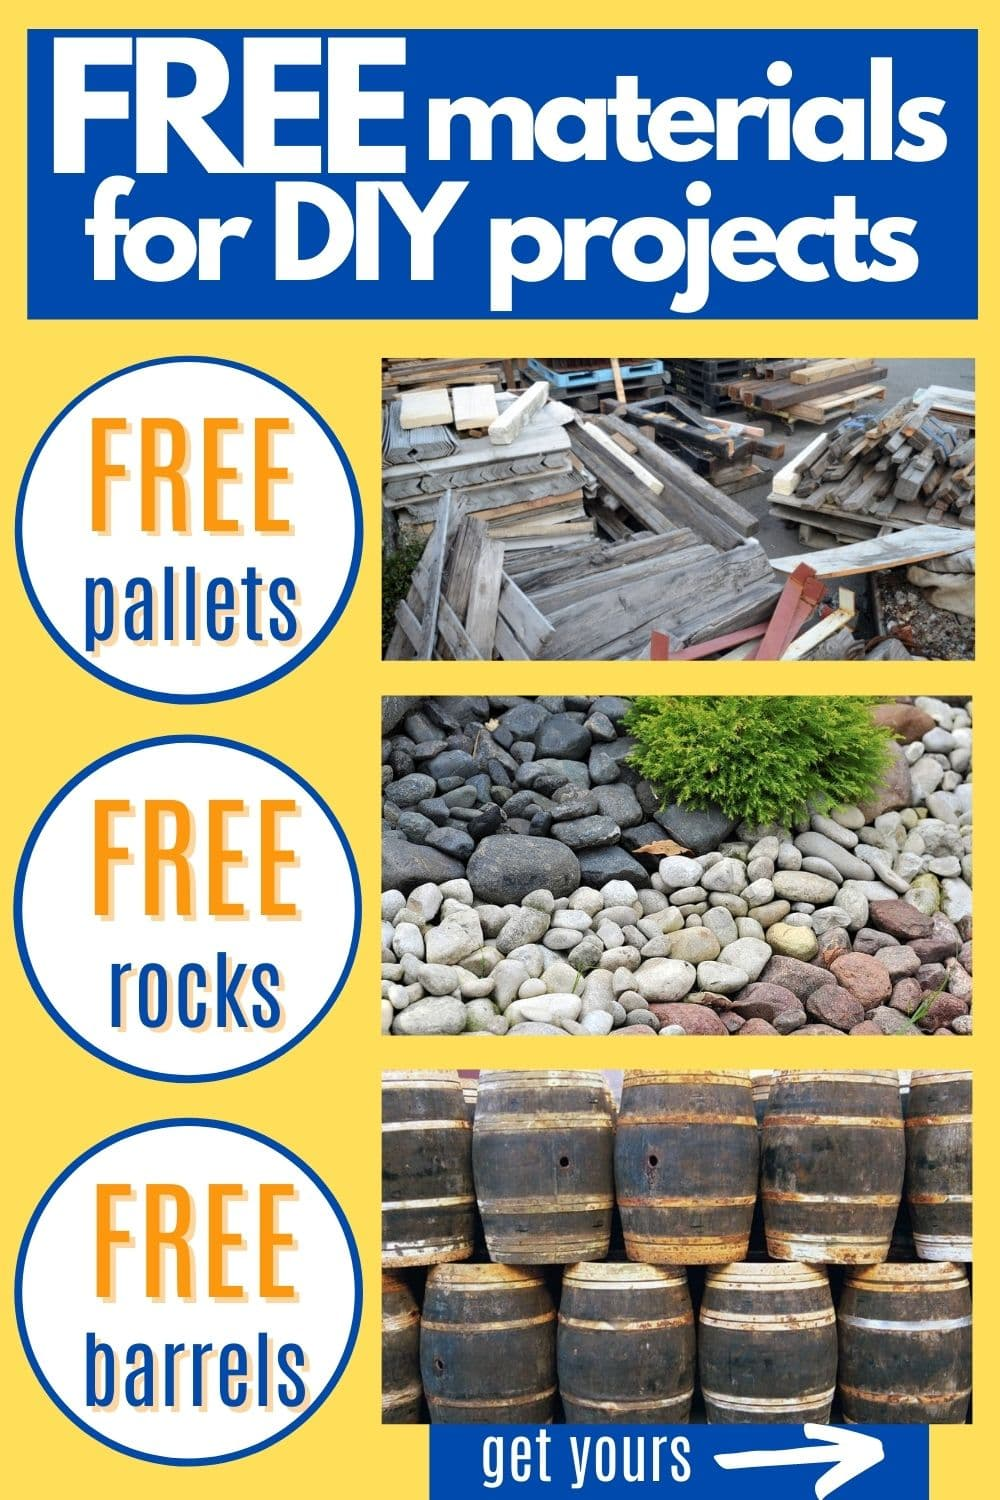 Free Materials For DIY Projects: Where To Get Free Pallets, Barrels, Landscaping Materials & More!